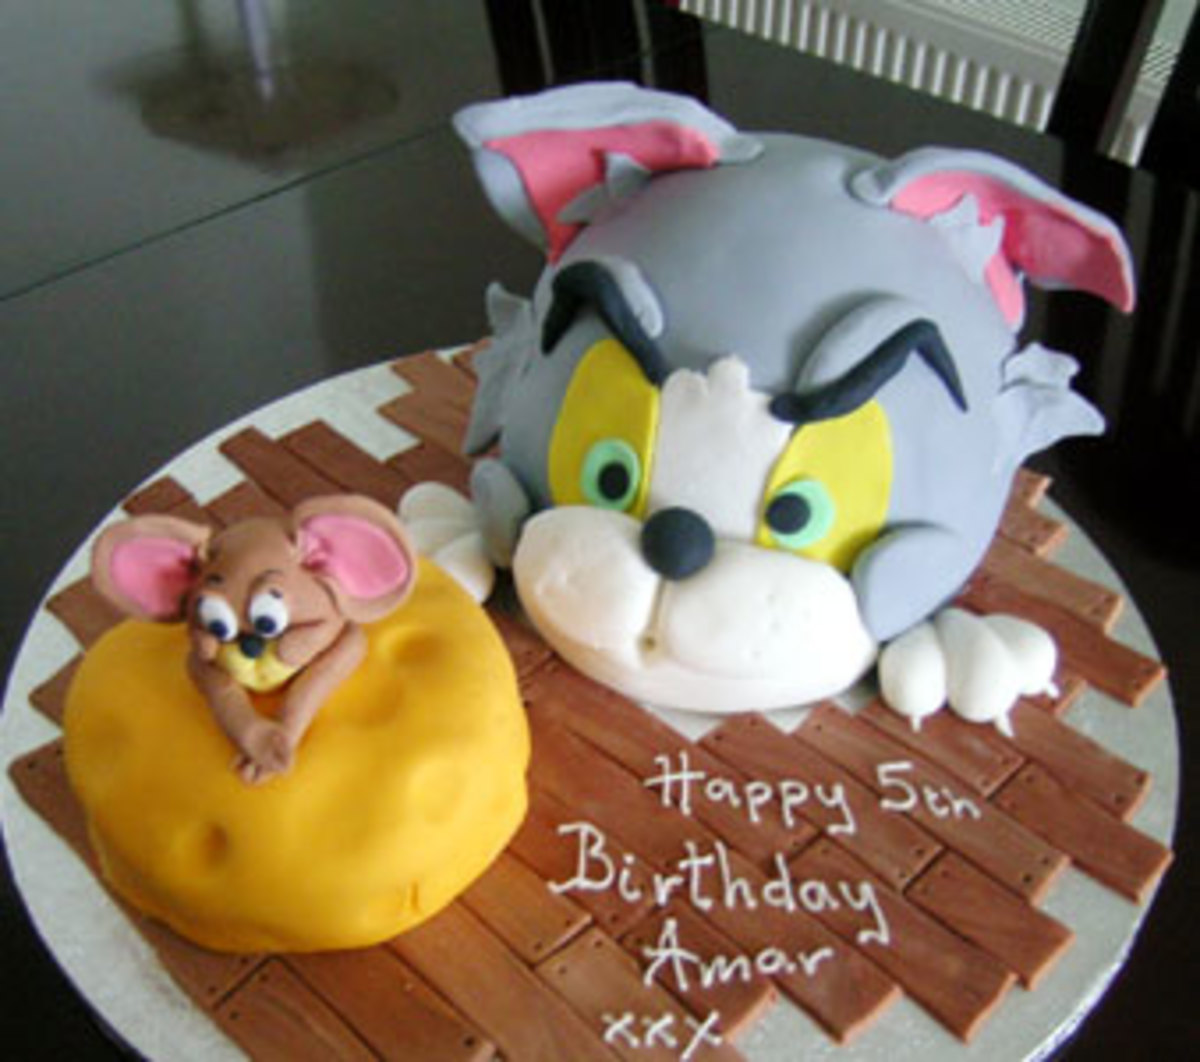 Comes in 2 flavors - Vanilla or Lemon. Never did Tom and Jerry look so delectable!